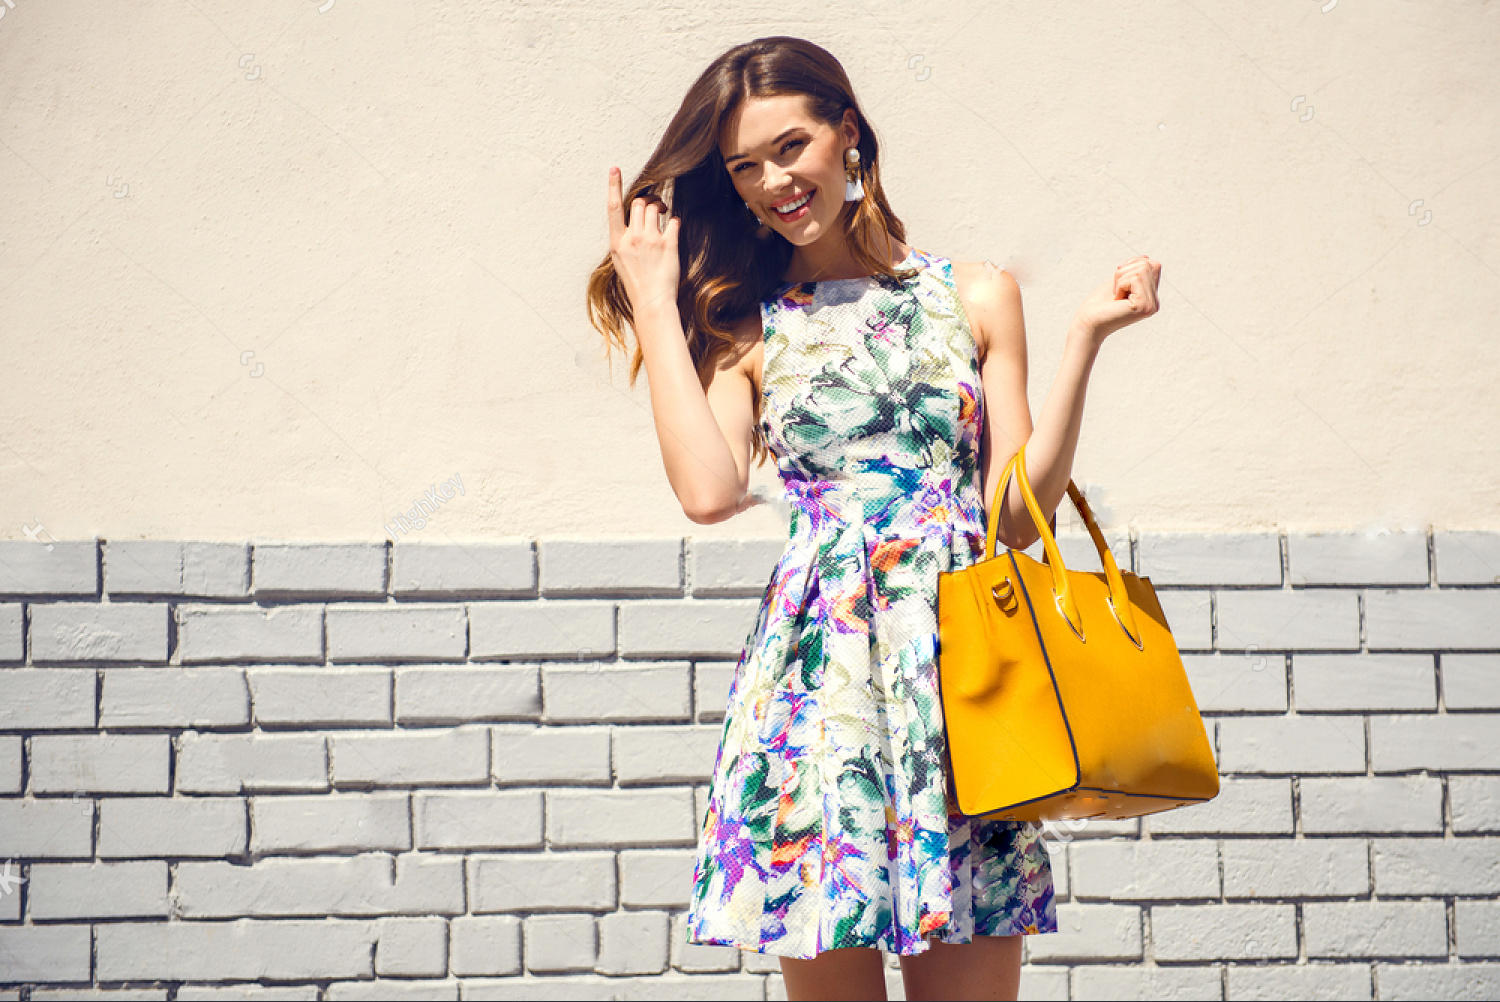 stock-photo-beautiful-brunette-young-woman-wearing-nice-dress-yellow-handbag-walking-on-the-street-fashion-618850901